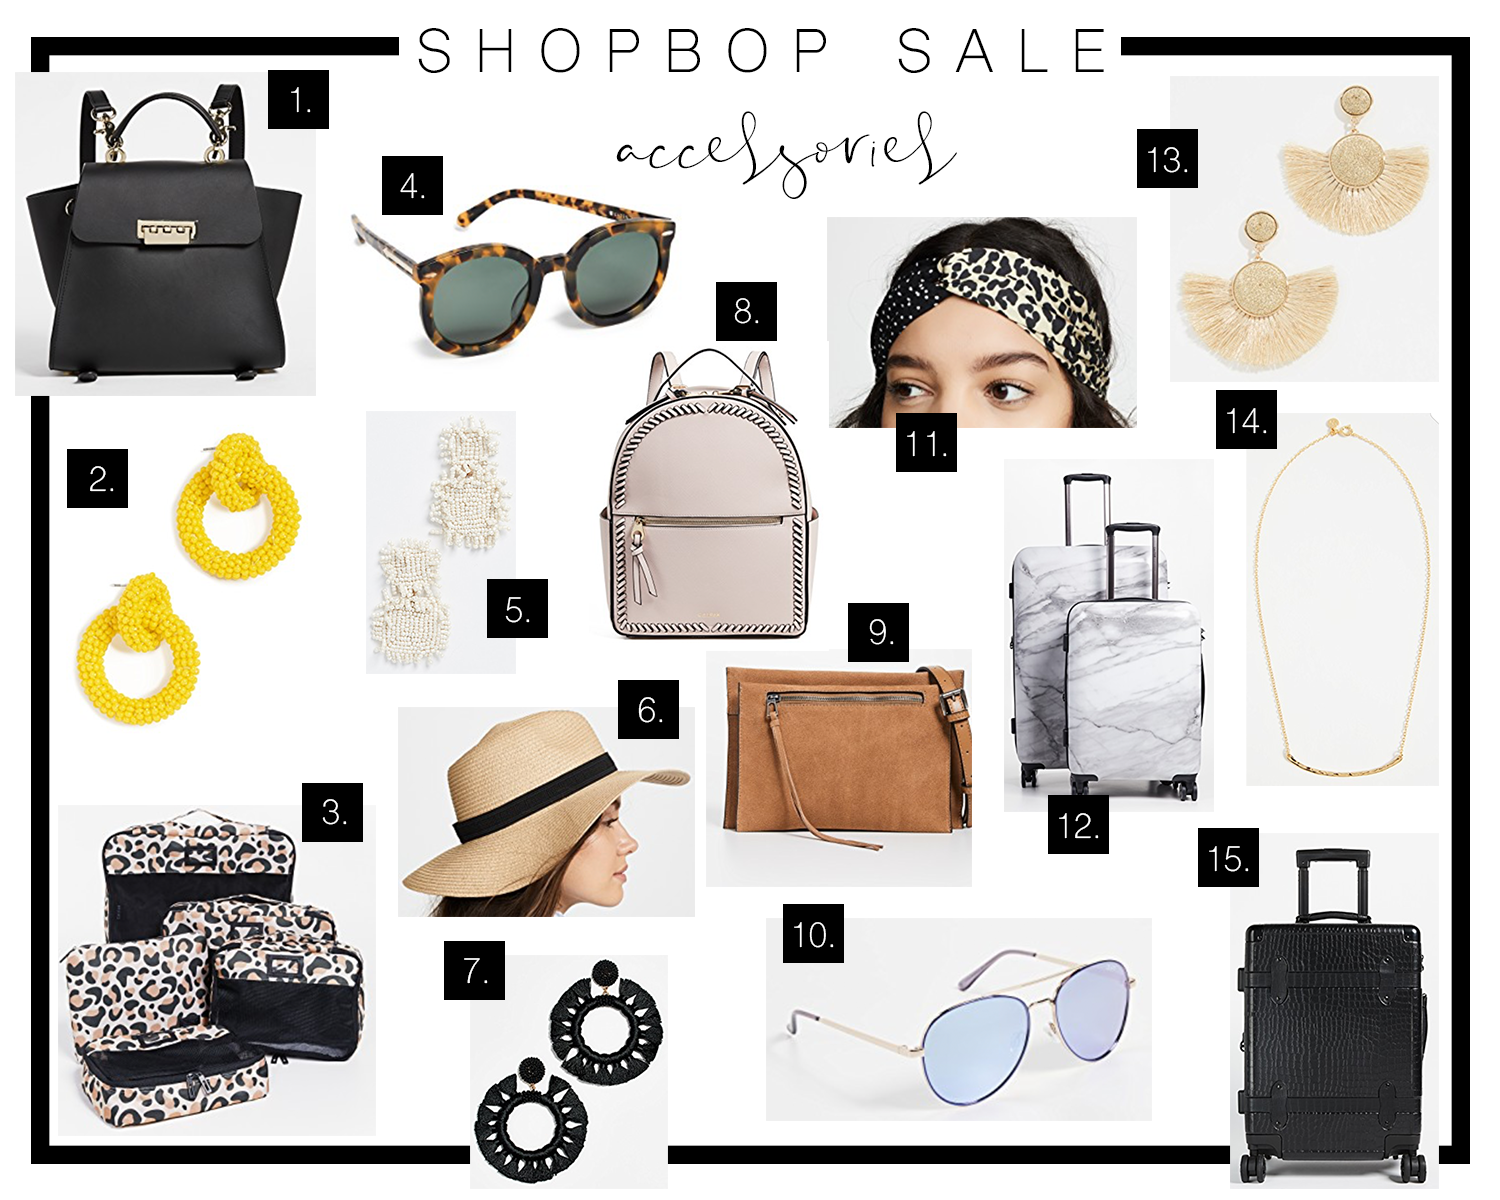 shopbop-sale-accessories.png